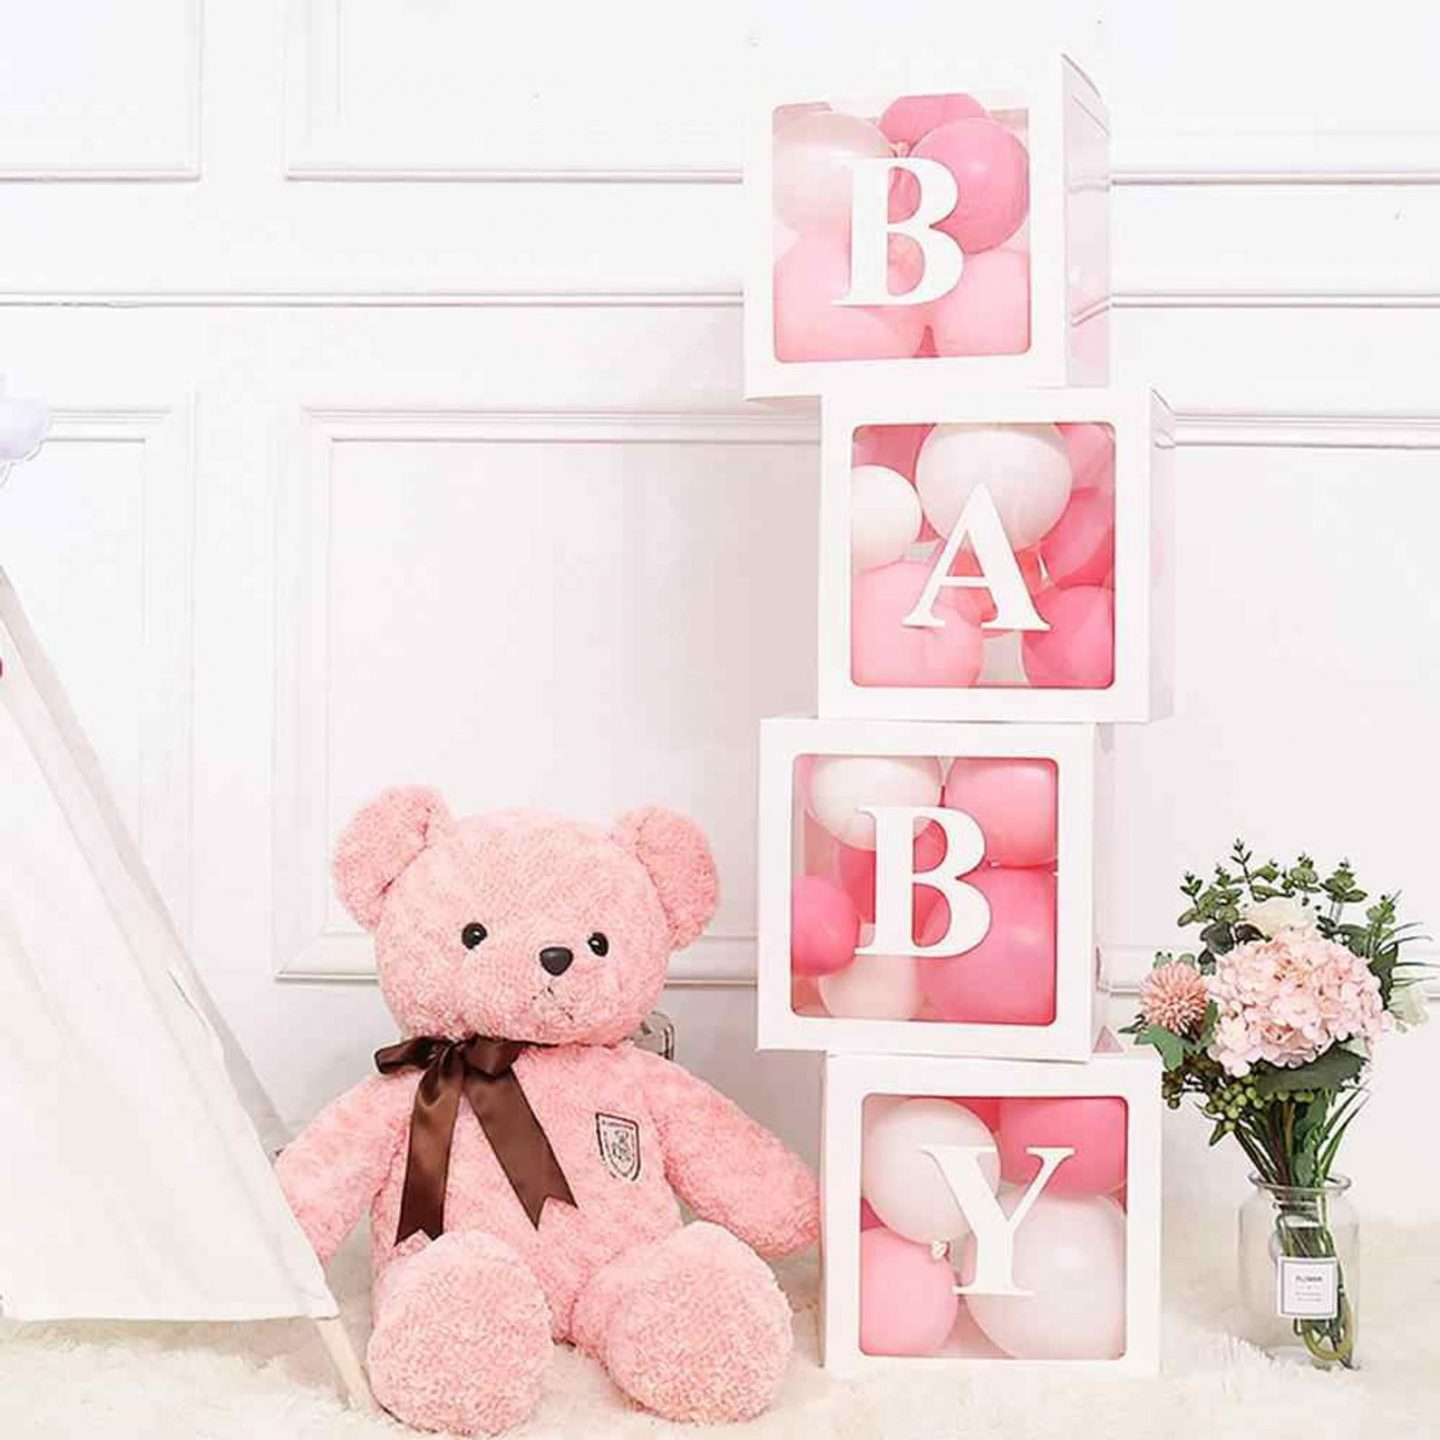 Pink teddy bear with transparent BABY boxes